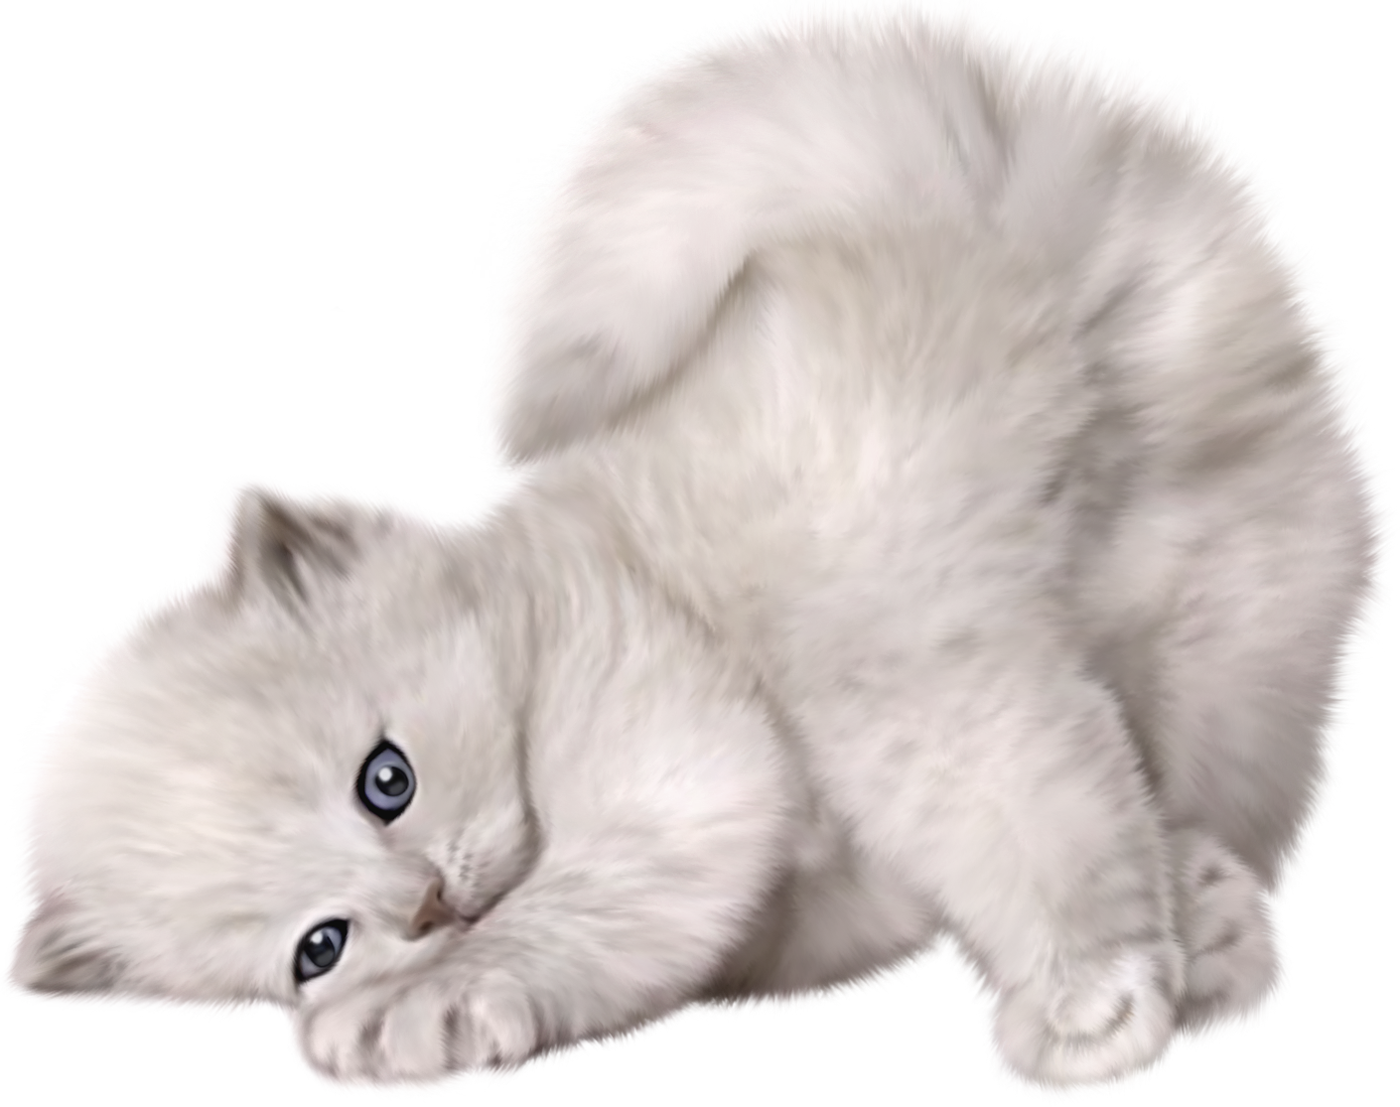 Cute images gallery for. Kittens clipart fluffy